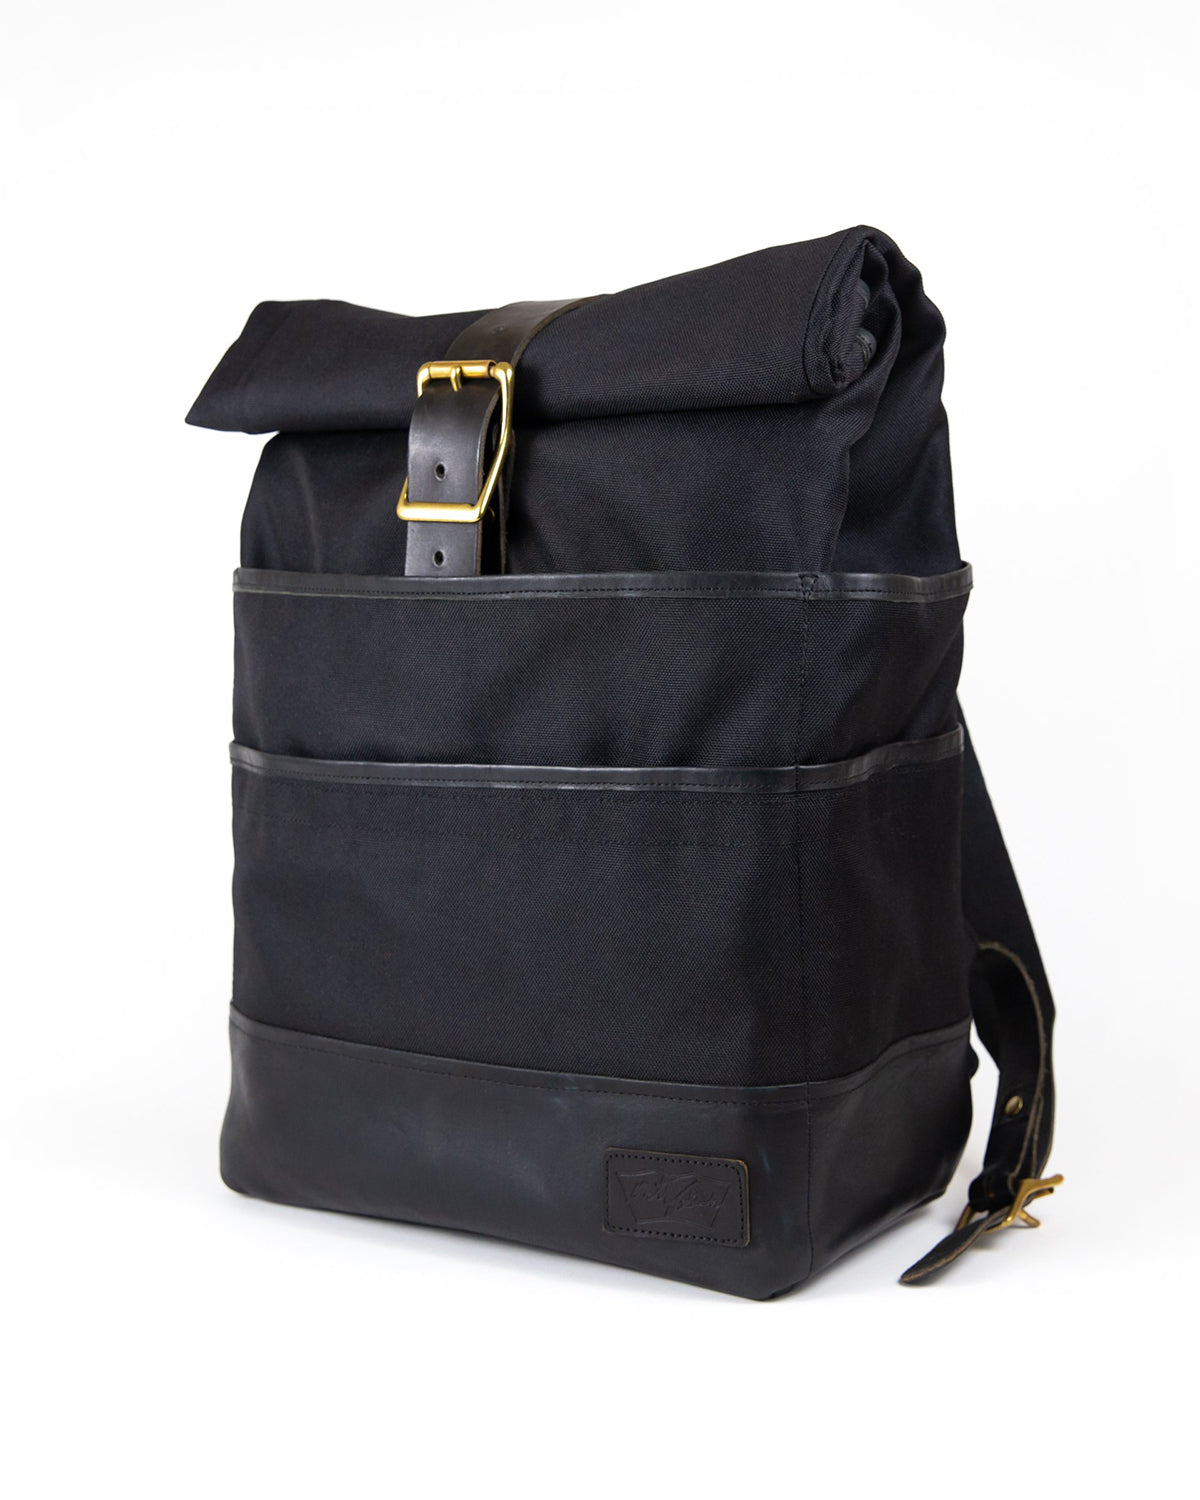 Weekender in All Black - Motley Goods